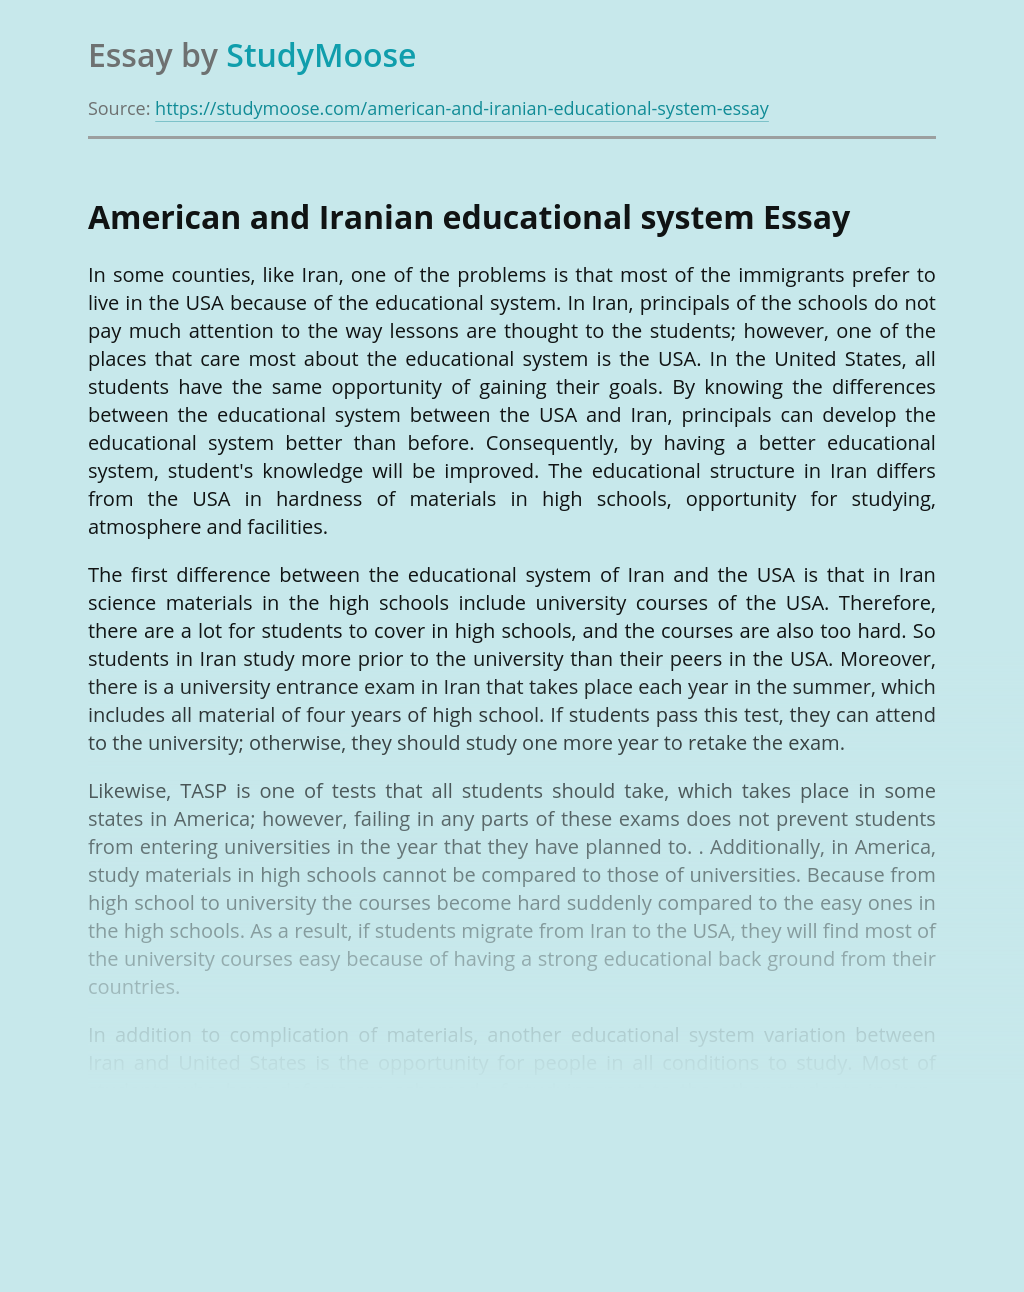 American and Iranian educational system